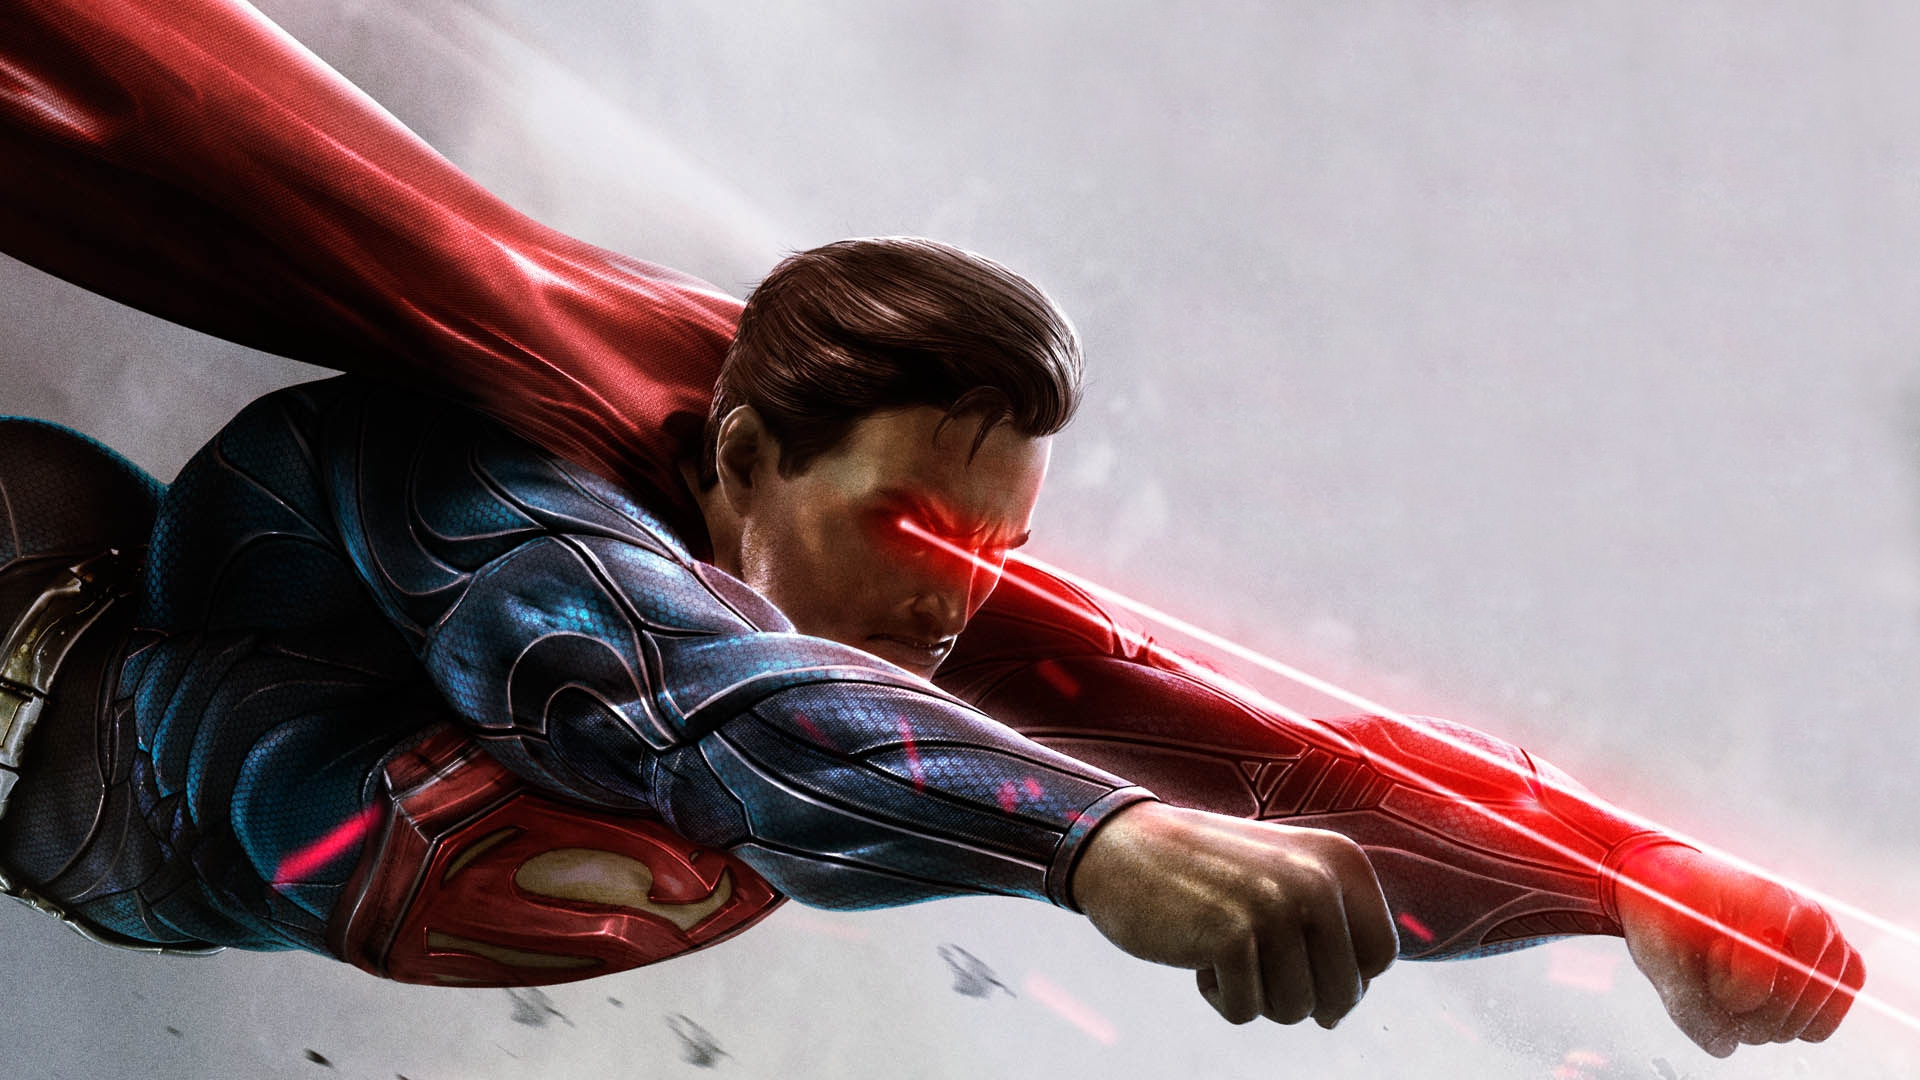 superman desktop wallpaper wallpapers 1920x1080 1920x1080